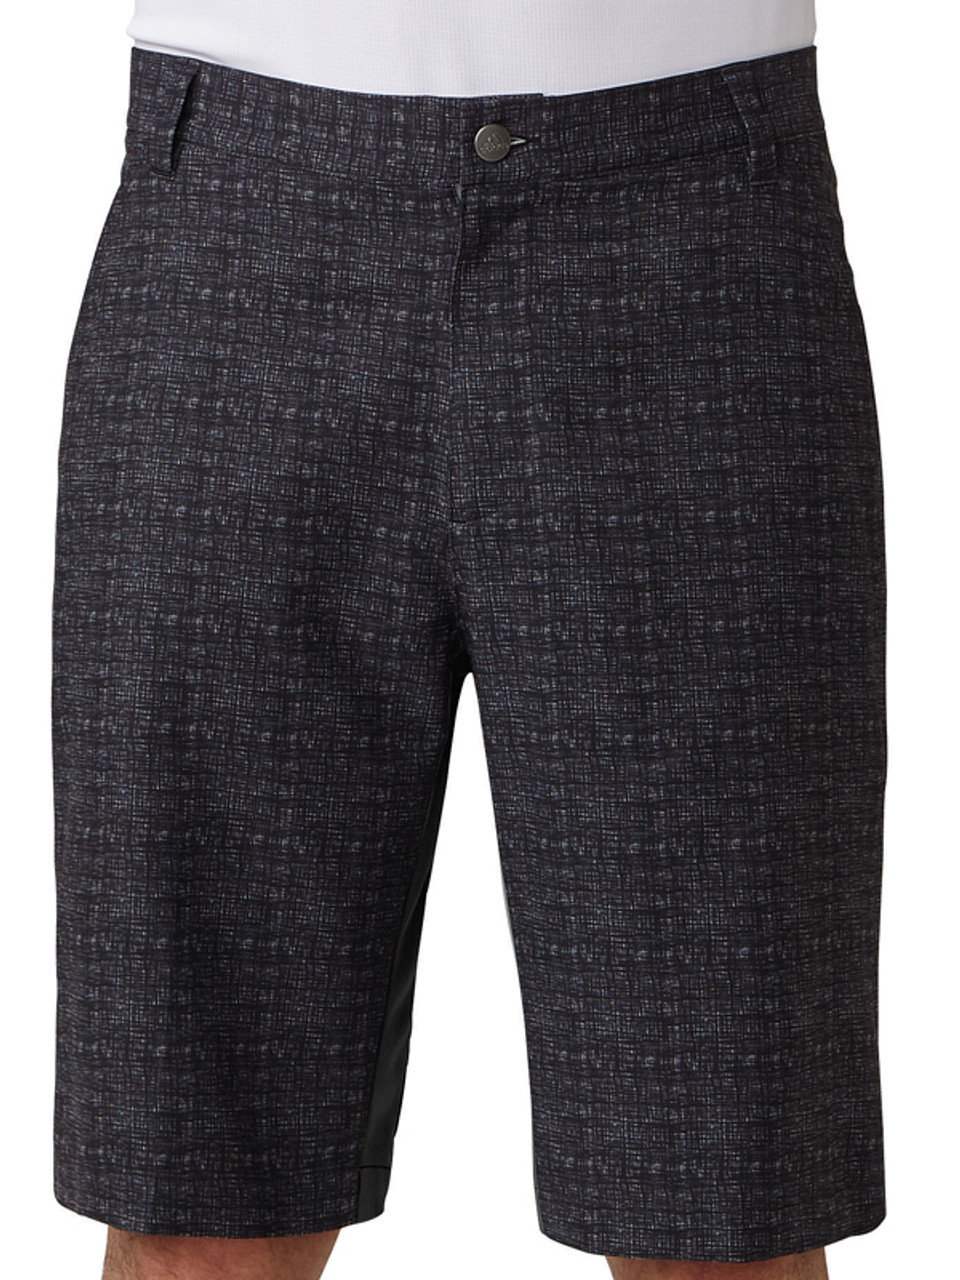 new products b433e 82811 Adidas Climacool Ultimate 365 Airflow Grid Short - Vista Gry